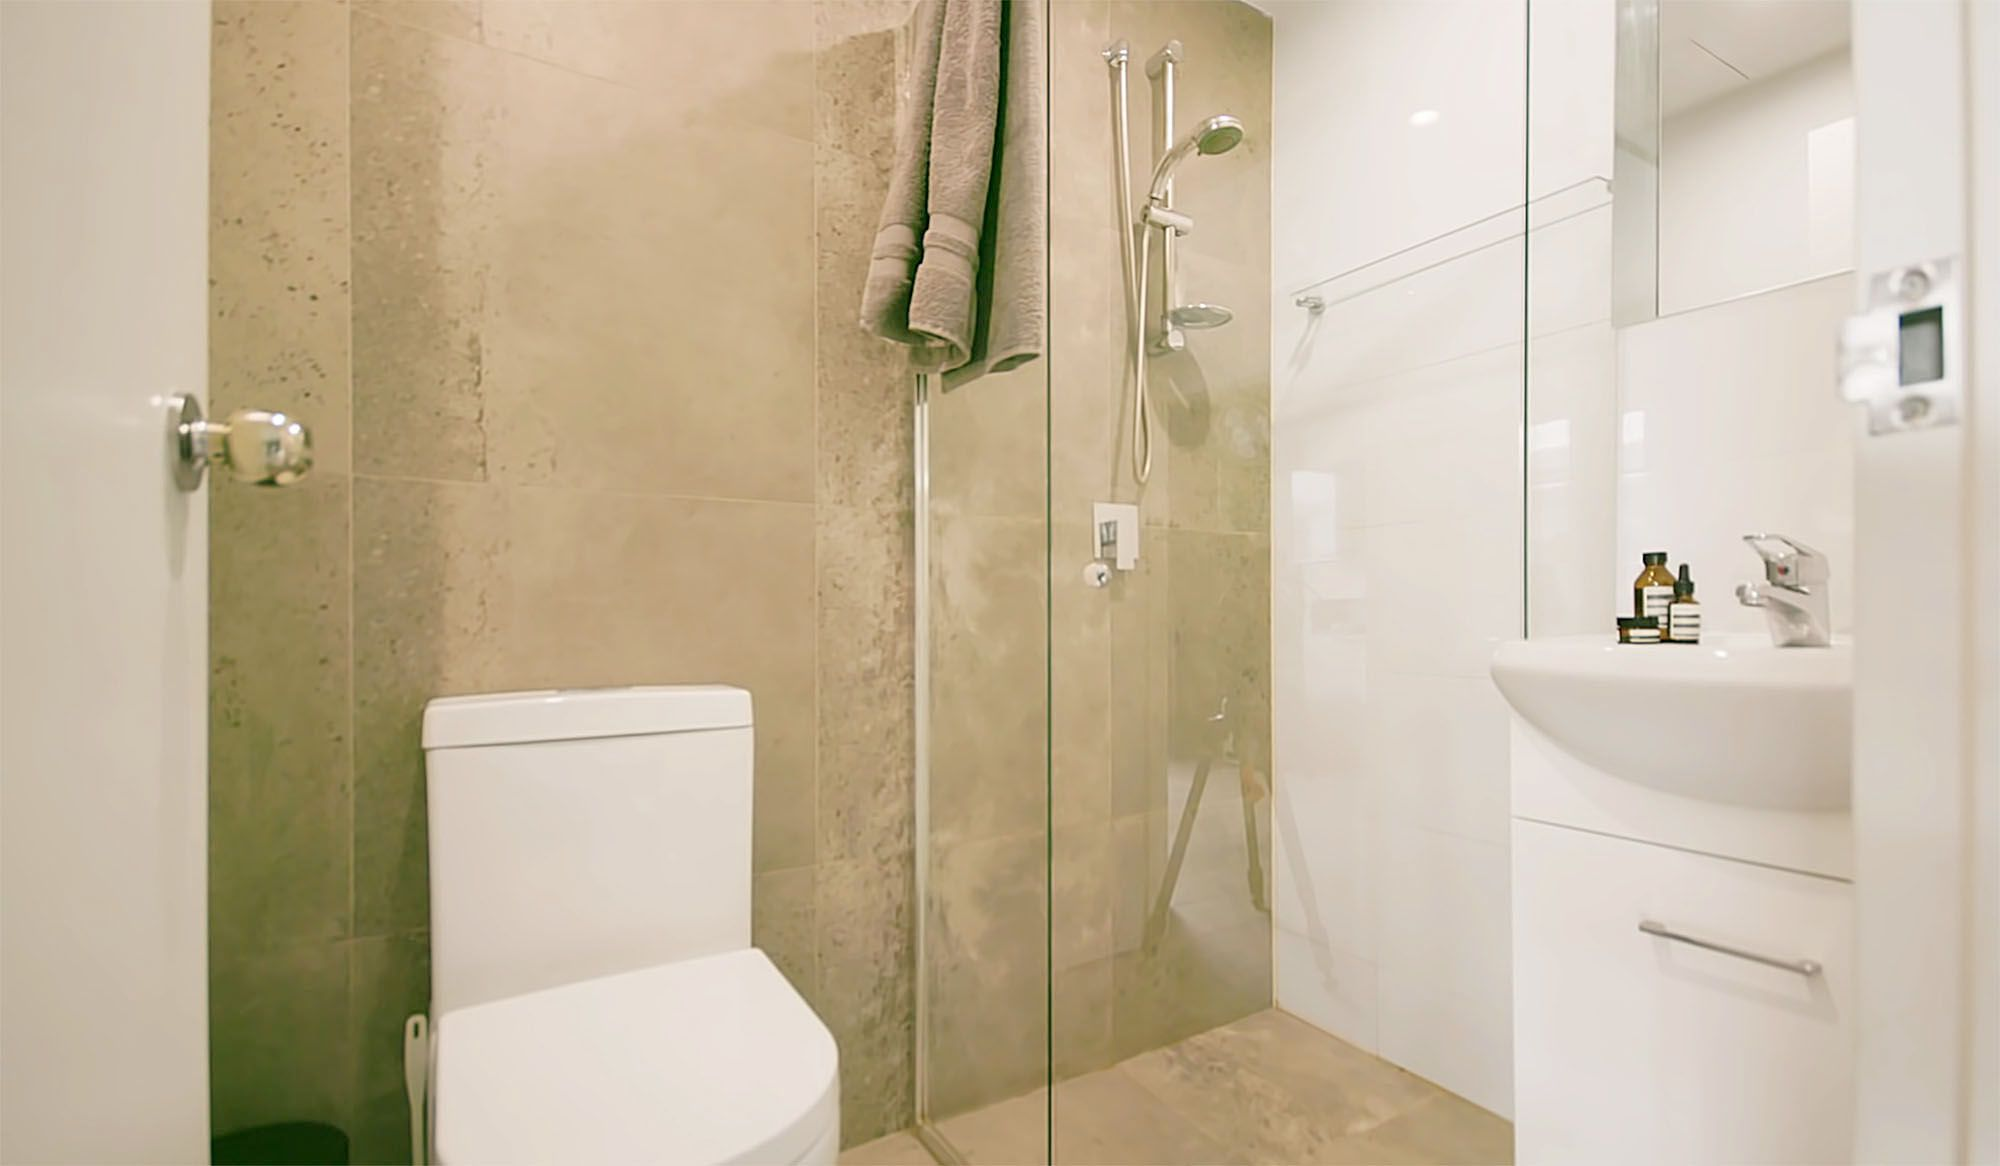 UKO stanmore coliving micro-apartment Mostaghim Associates bathroom